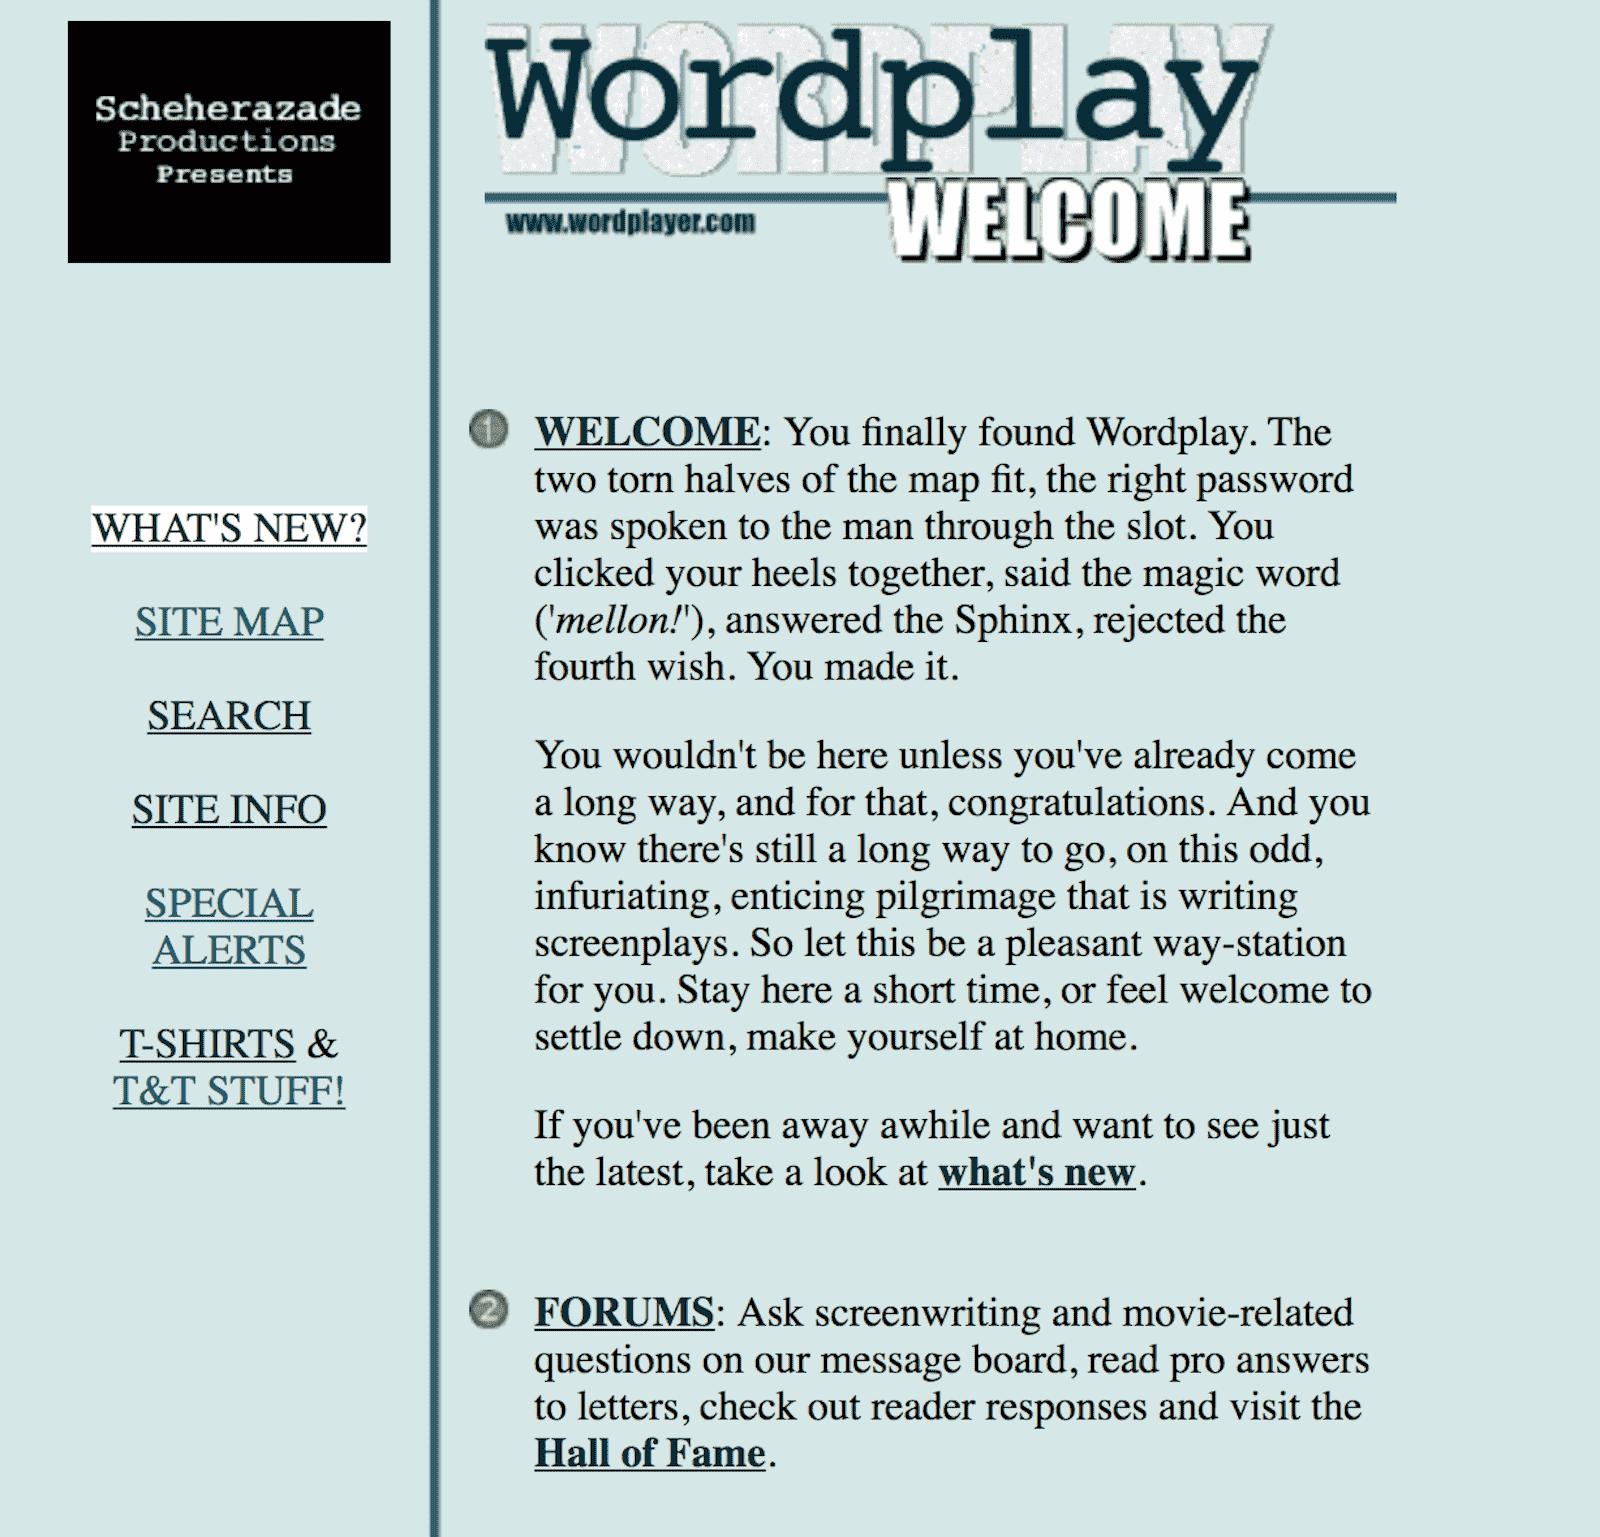 Best Screenwriting Website - Script Writers - Wordplayer Terry Rossio